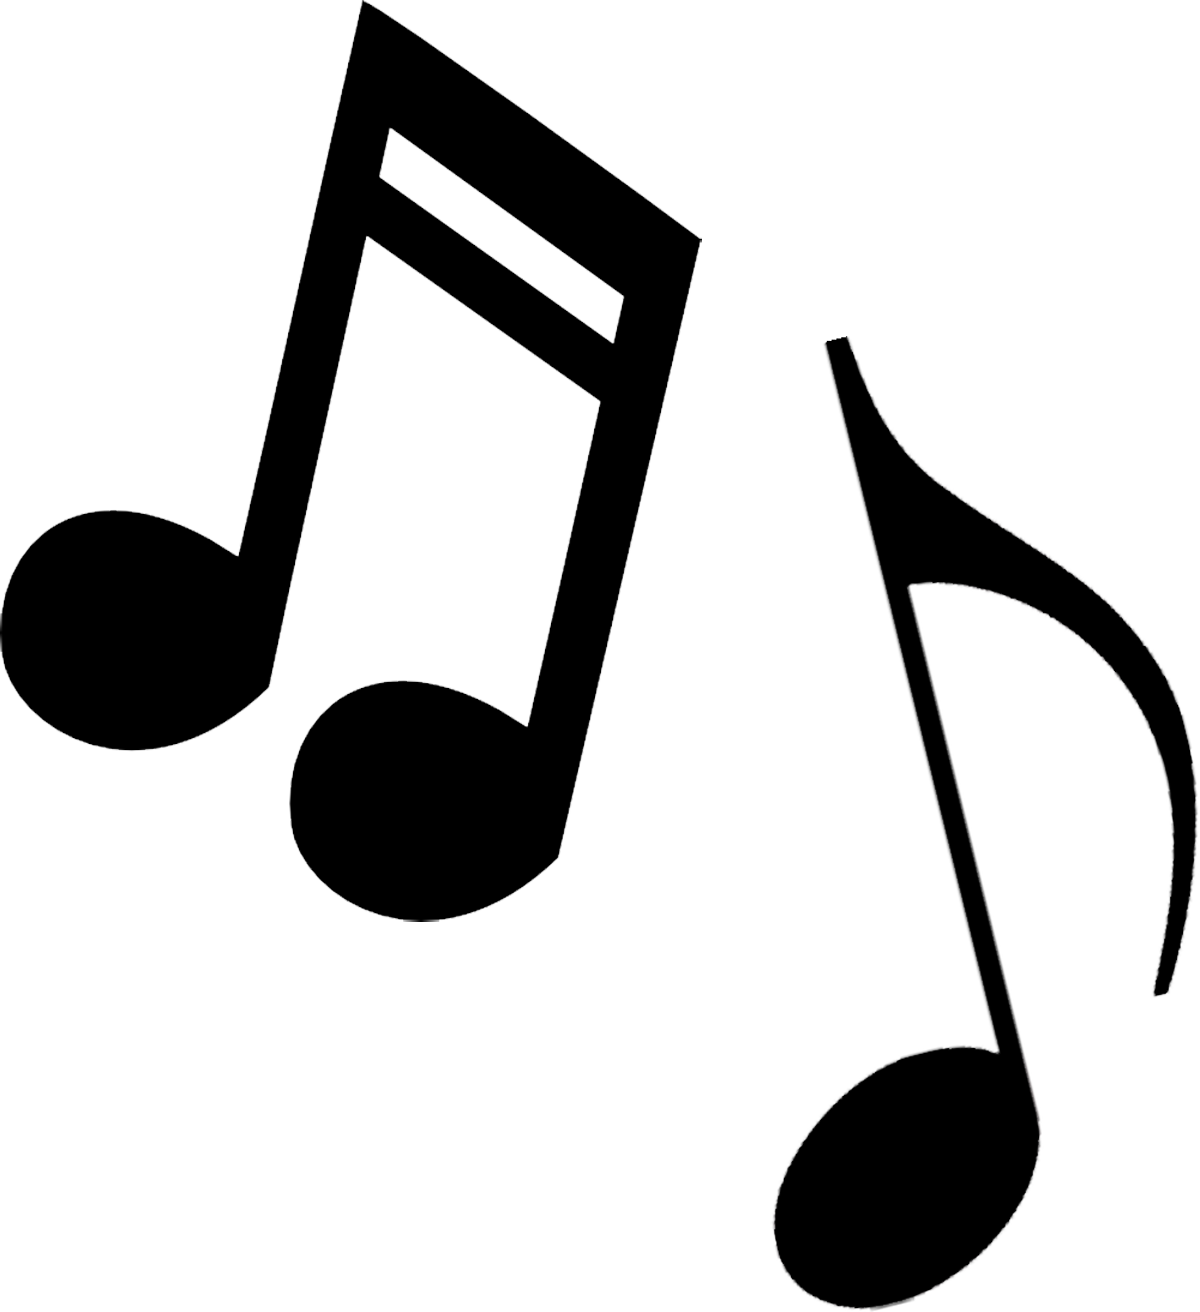 Musical Clip Art Music Notes-Musical clip art music notes-15